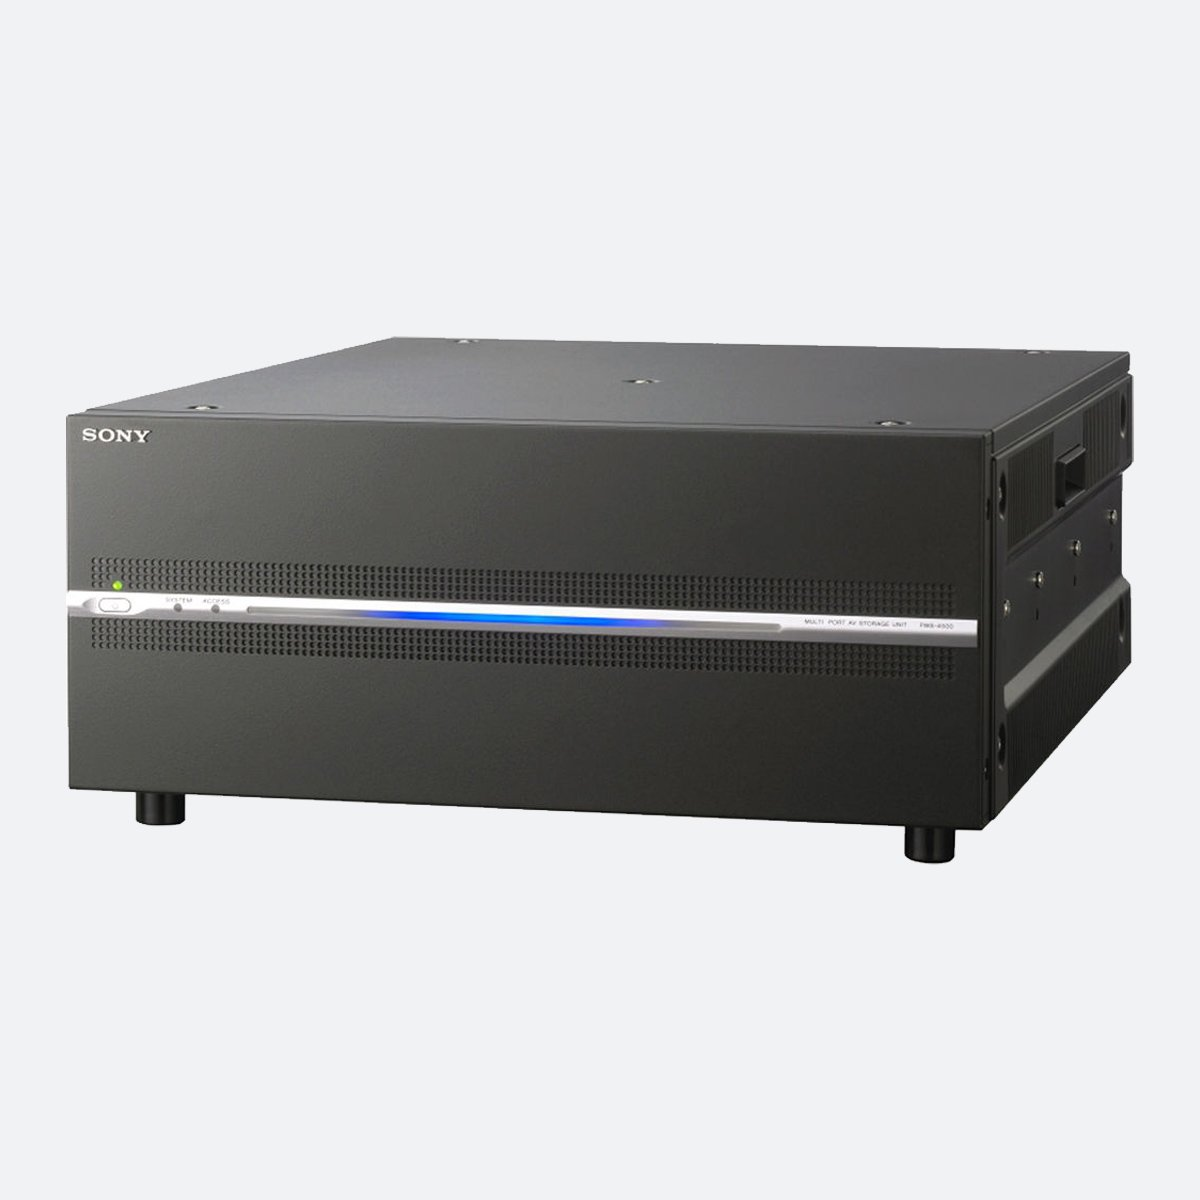 Sony PWS-4500 4K/HD multi-port AV storage unit for IP network